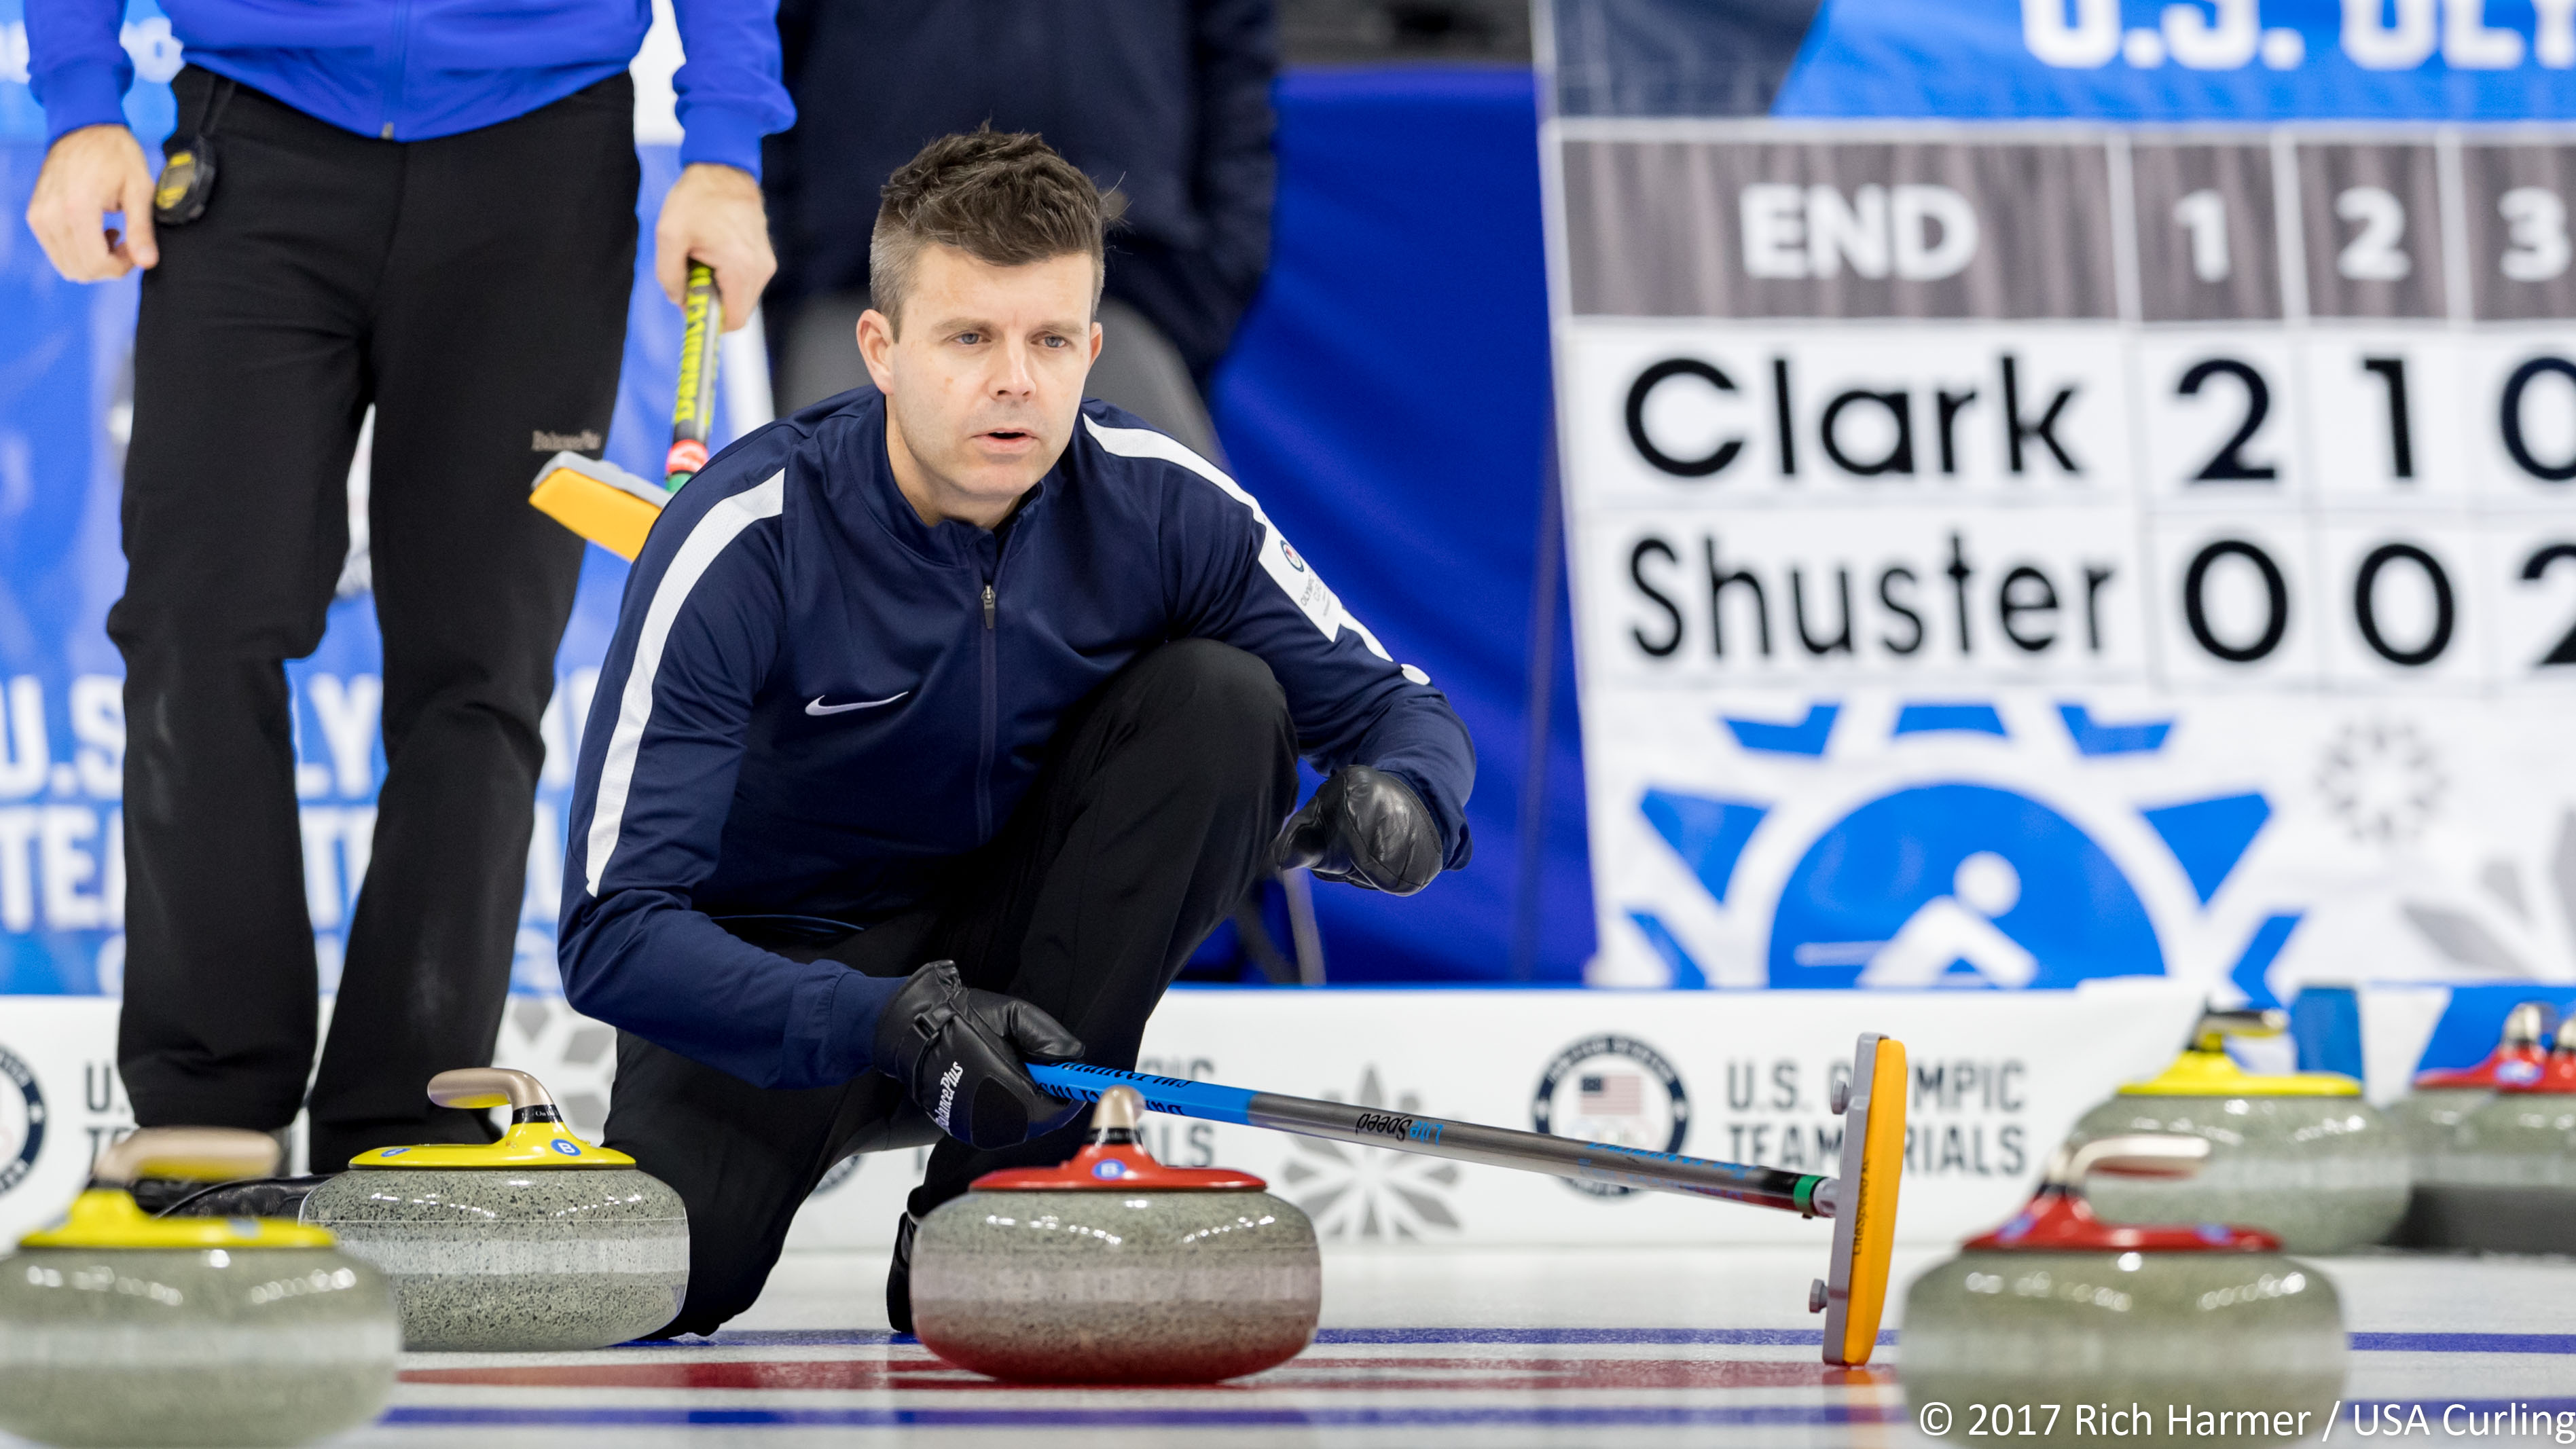 McCormick surprises Shuster in Playoff Opener